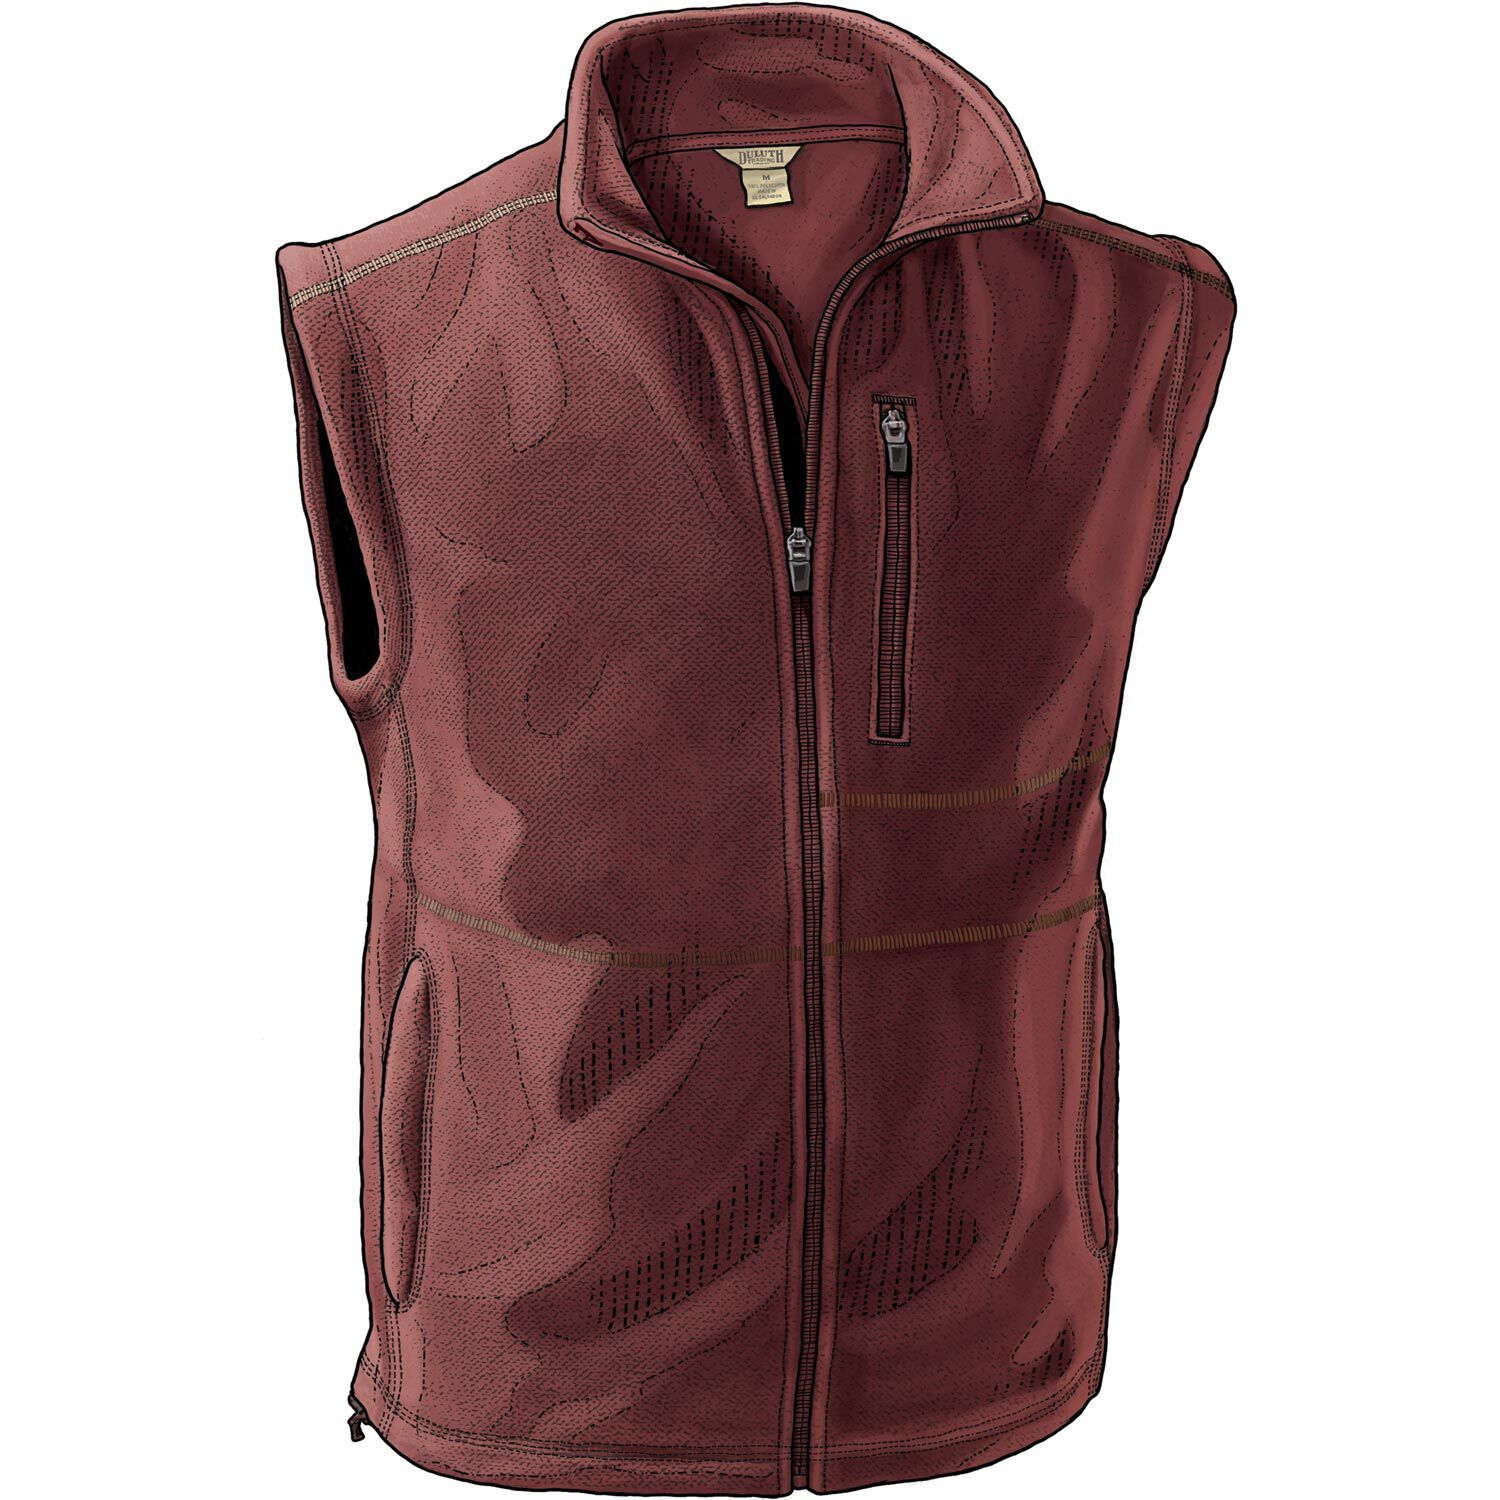 SPOEAR Zip Up Womens Vest with Zipper Pockets Athletic Sweater Fleece Vest Sleeveless Sweater Jacket